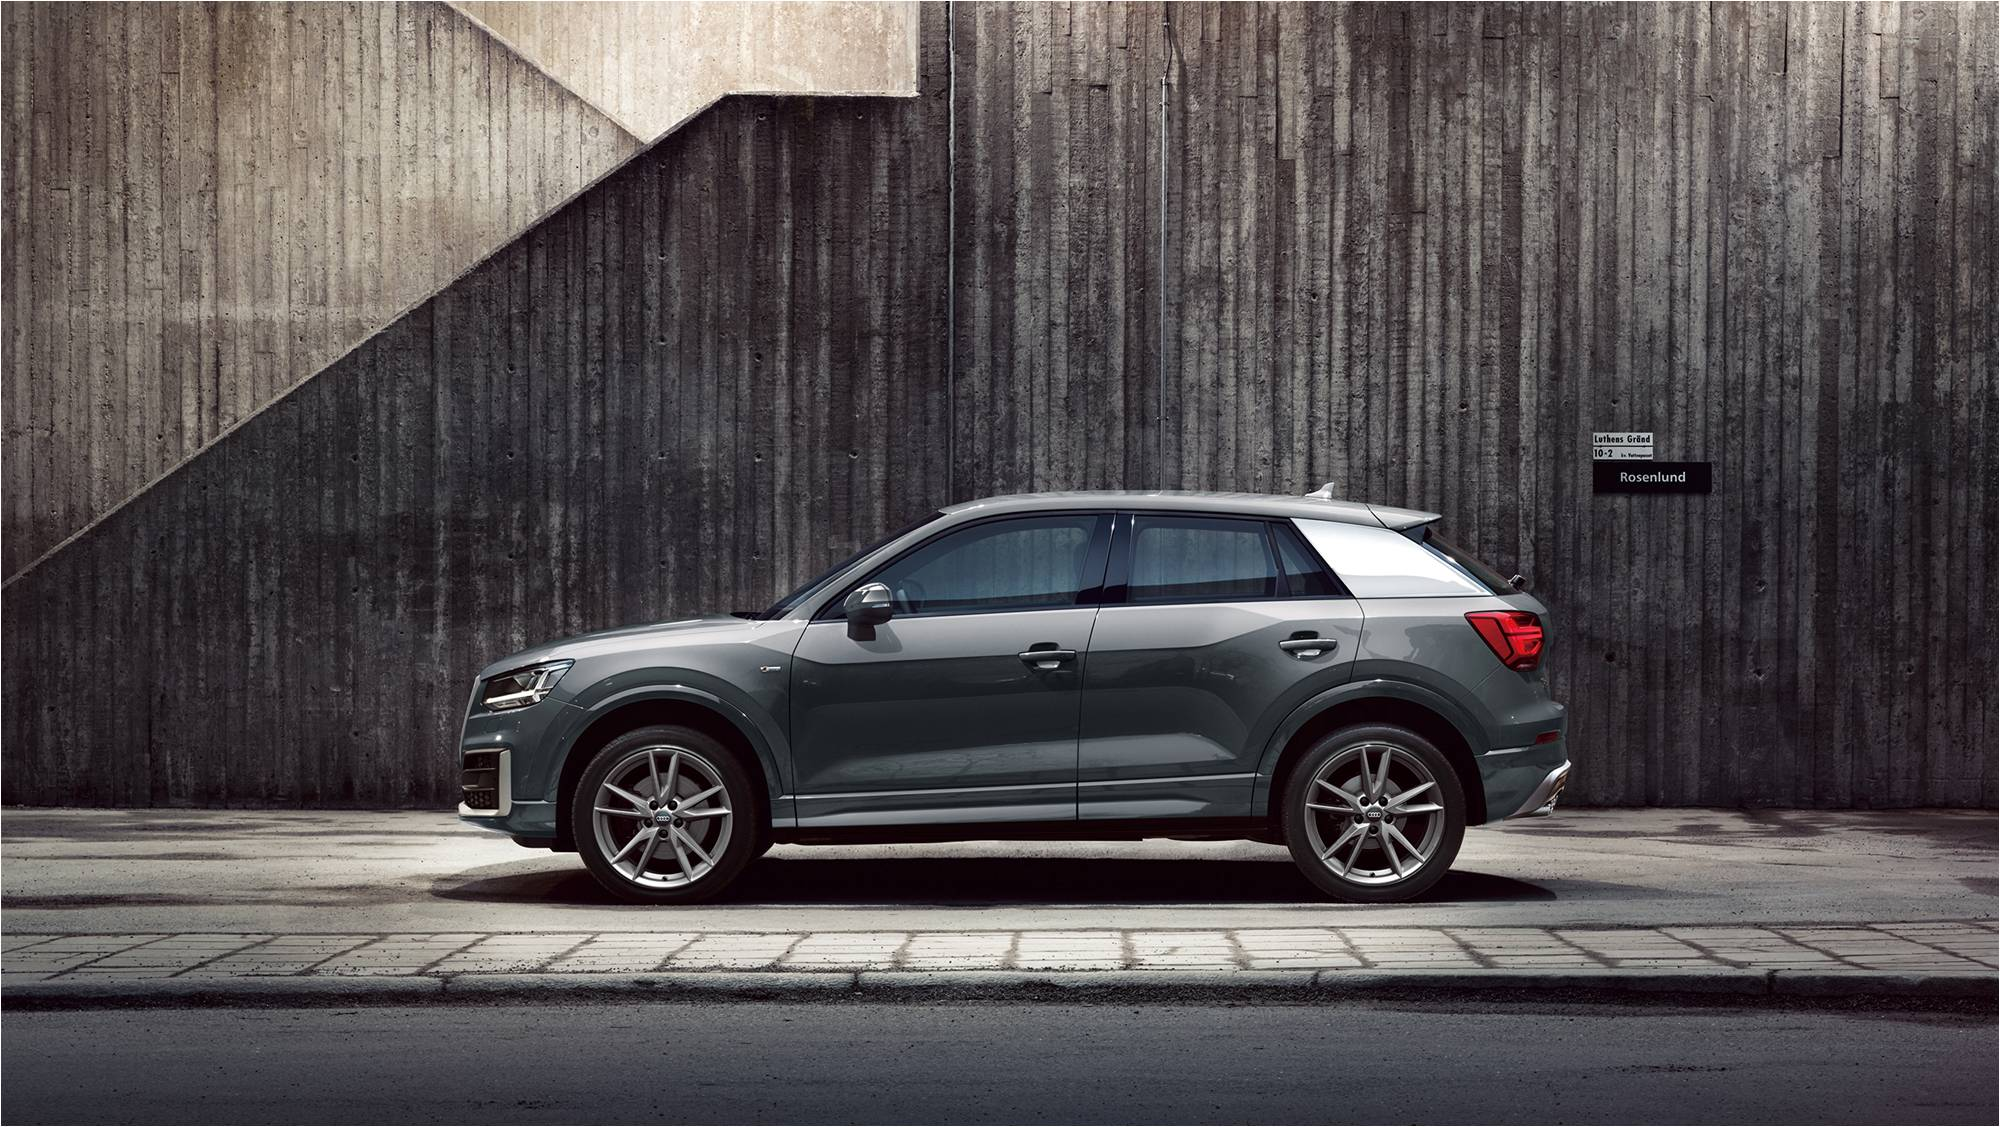 Audi Suv Models >> Q2発売を記念した導入限定モデル Audi Q2 1st edition | Audi Japan Press Center - アウディ